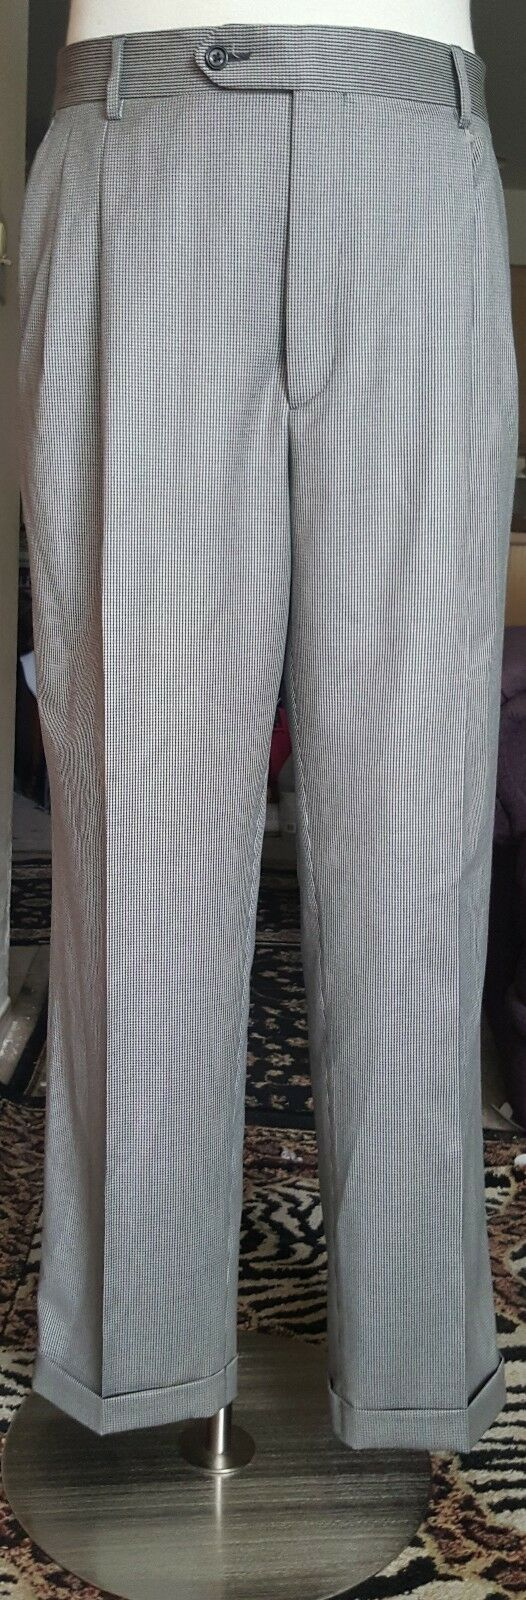 Gorgeous Enzo Mantovani Mens dress pants Made in  Size 34 x 30